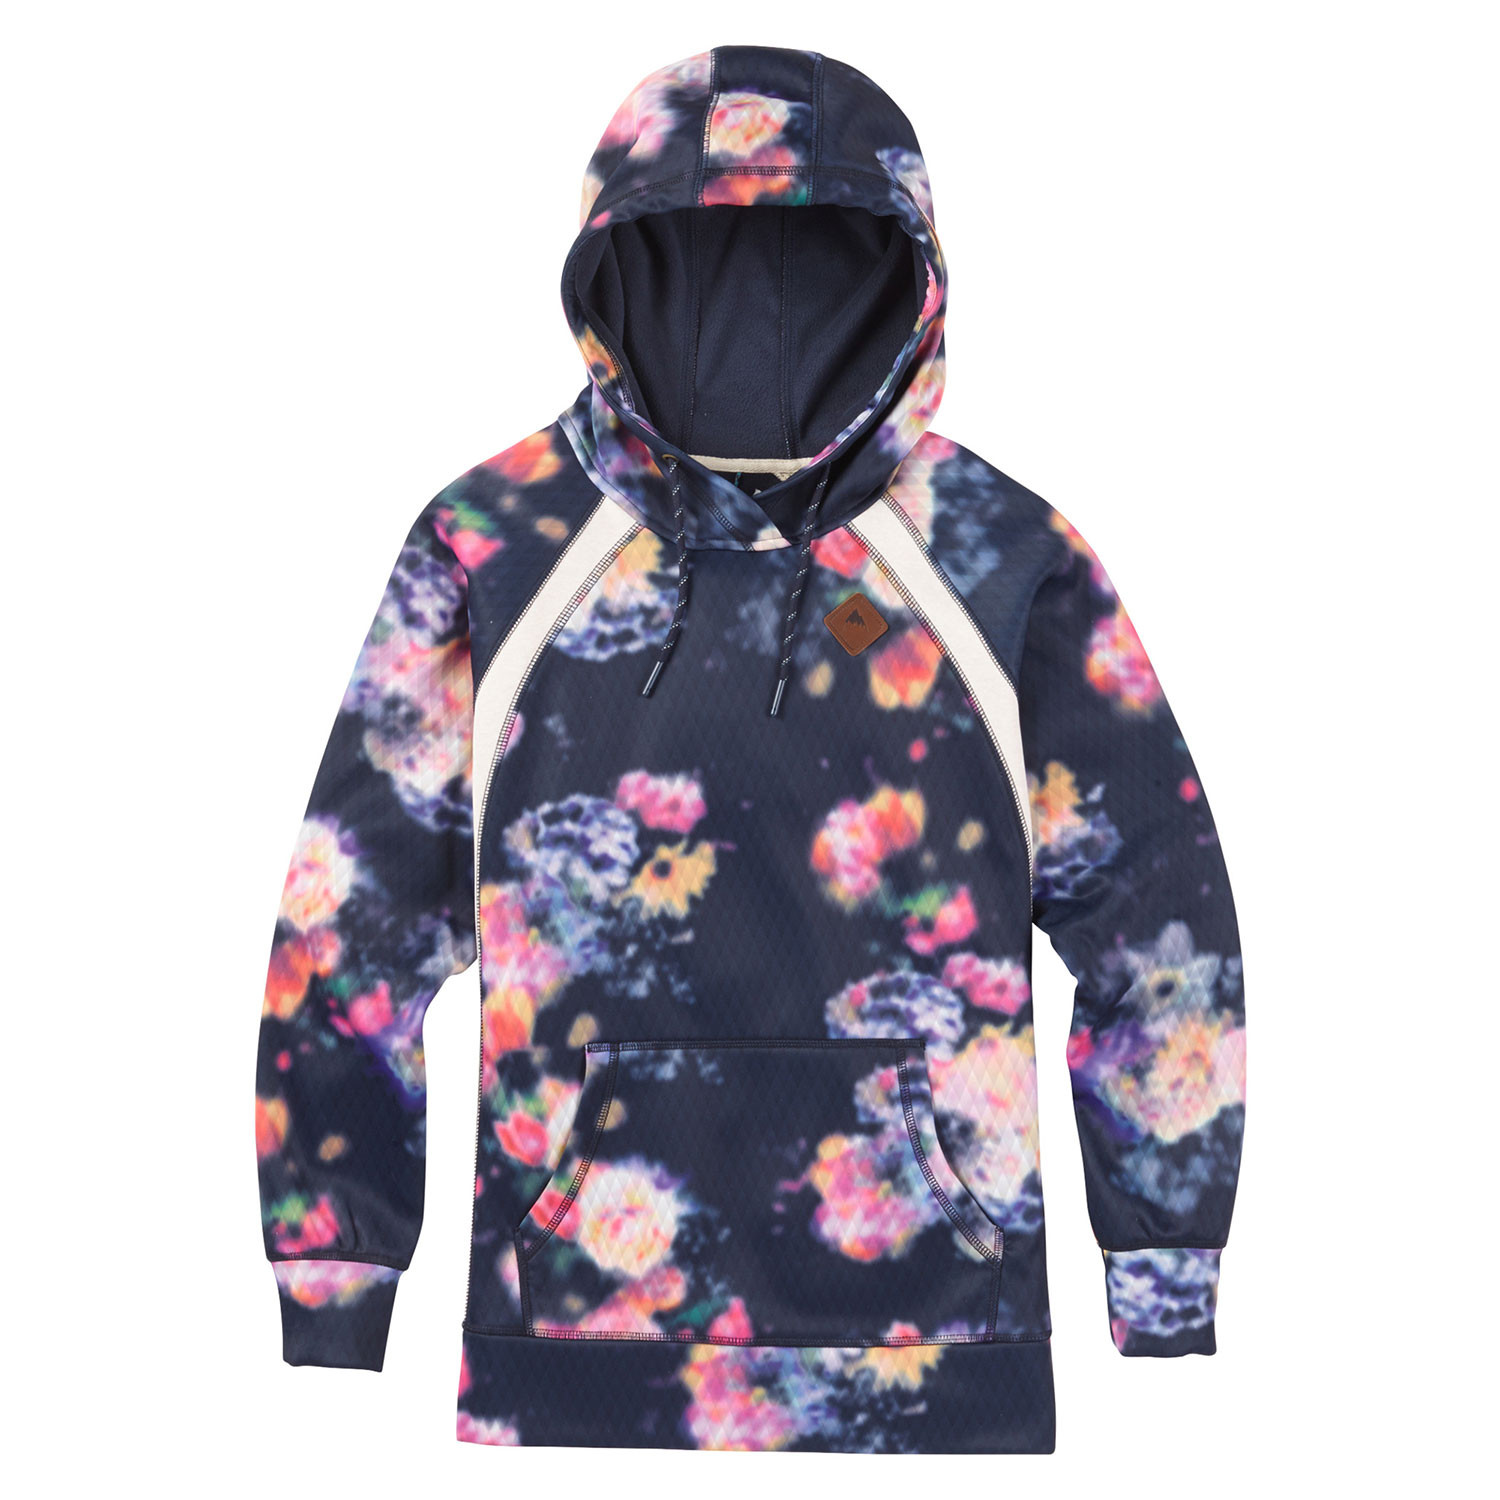 Mikina Burton Wms Heron Pullover Hoodie prism floral